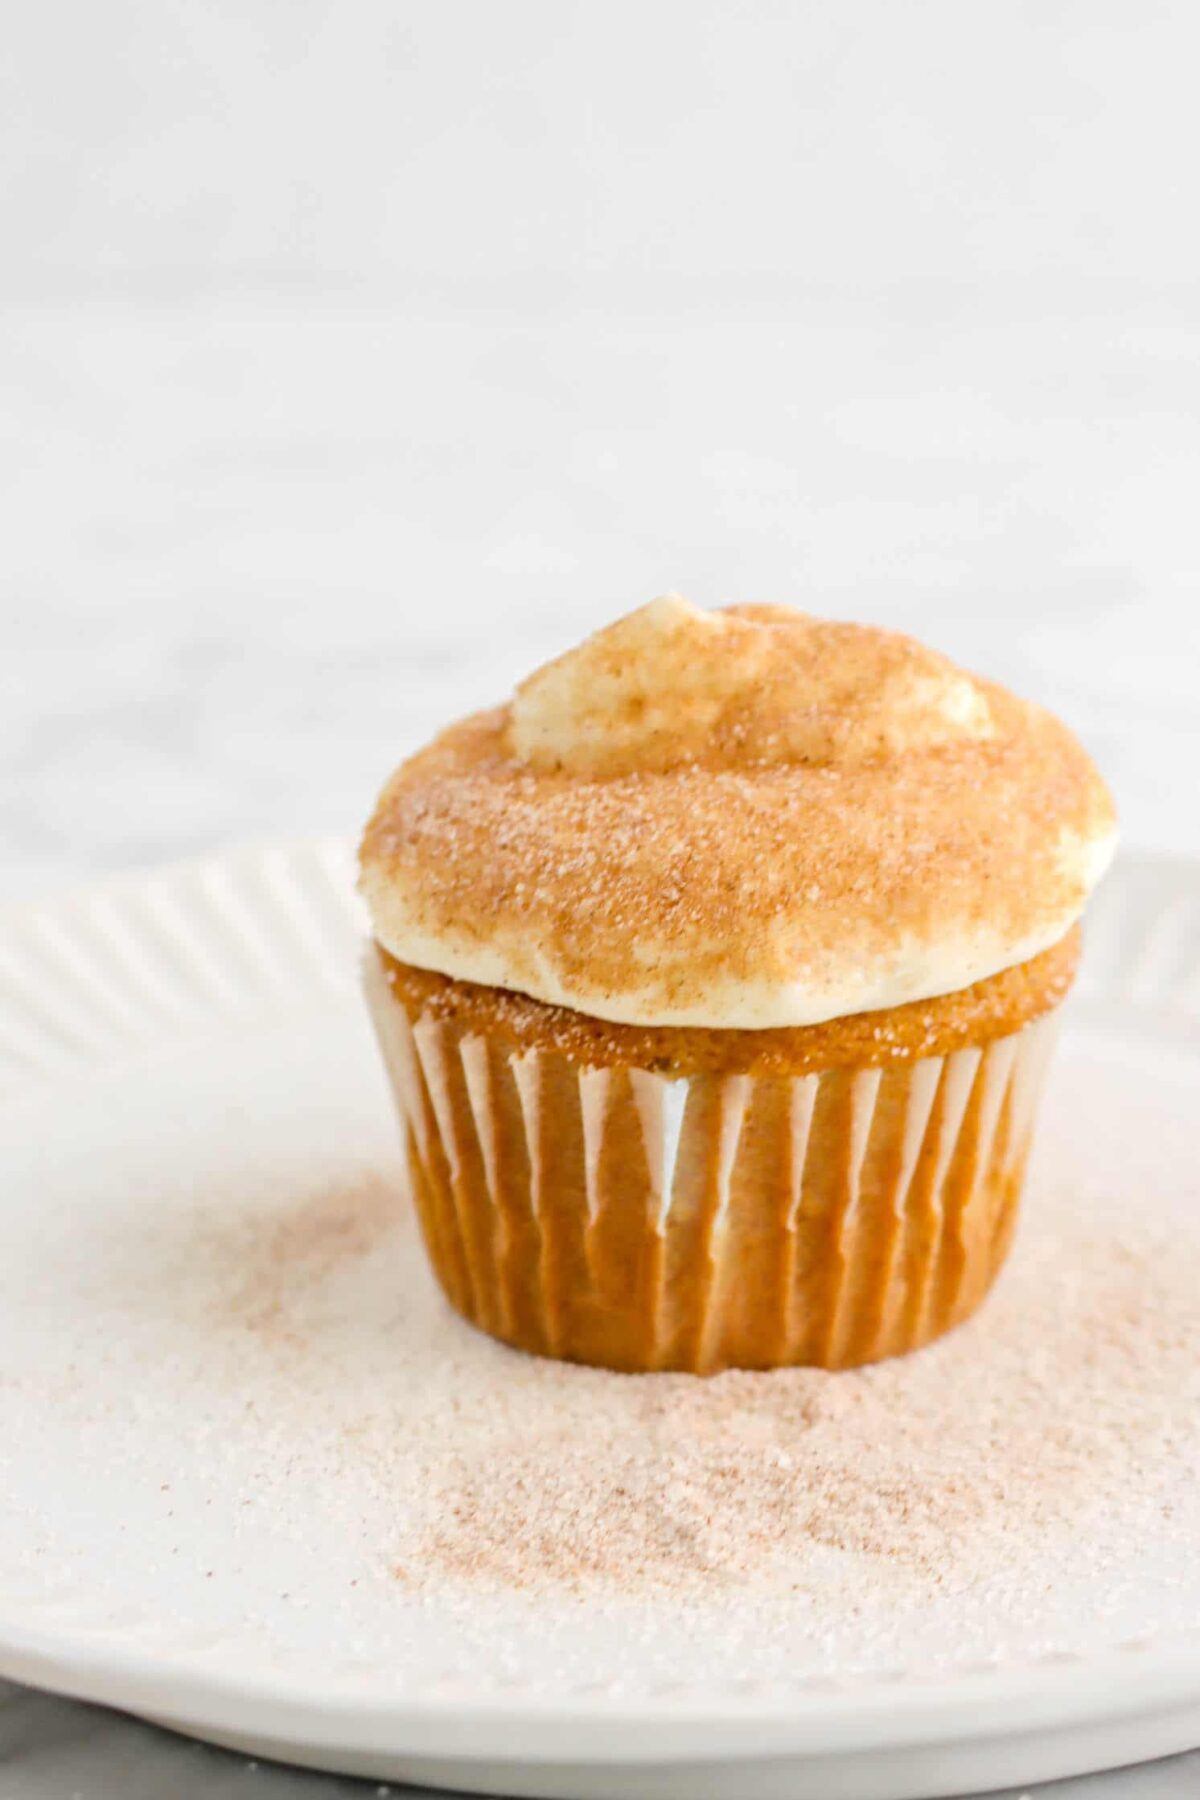 cupcake with frosting and cinnamon sugar on top